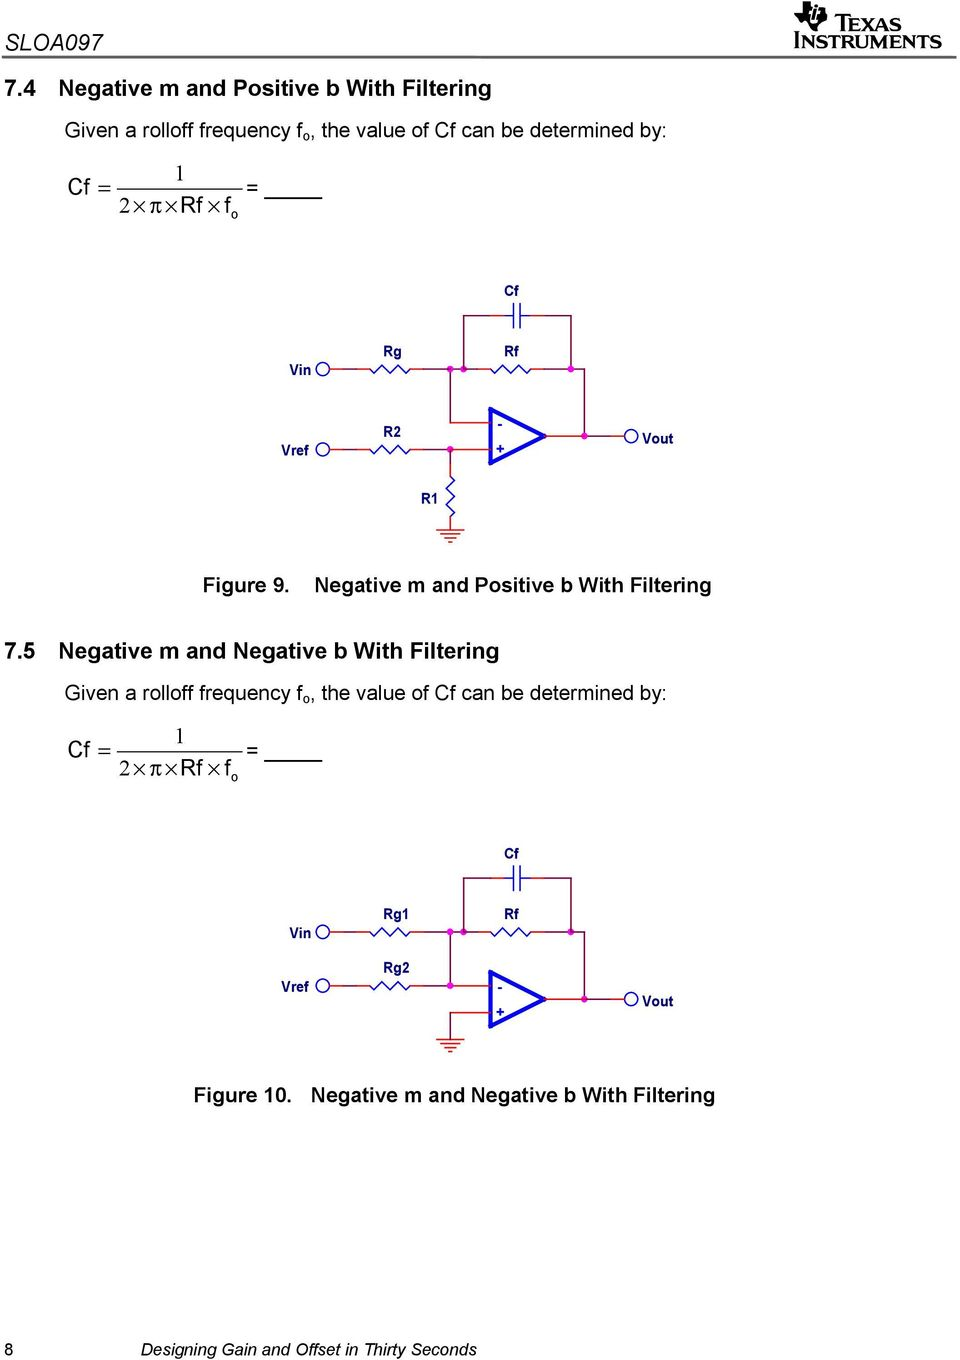 5 Negative m and Negative b With Filtering Given a rolloff frequency f o, the value of Cf can be